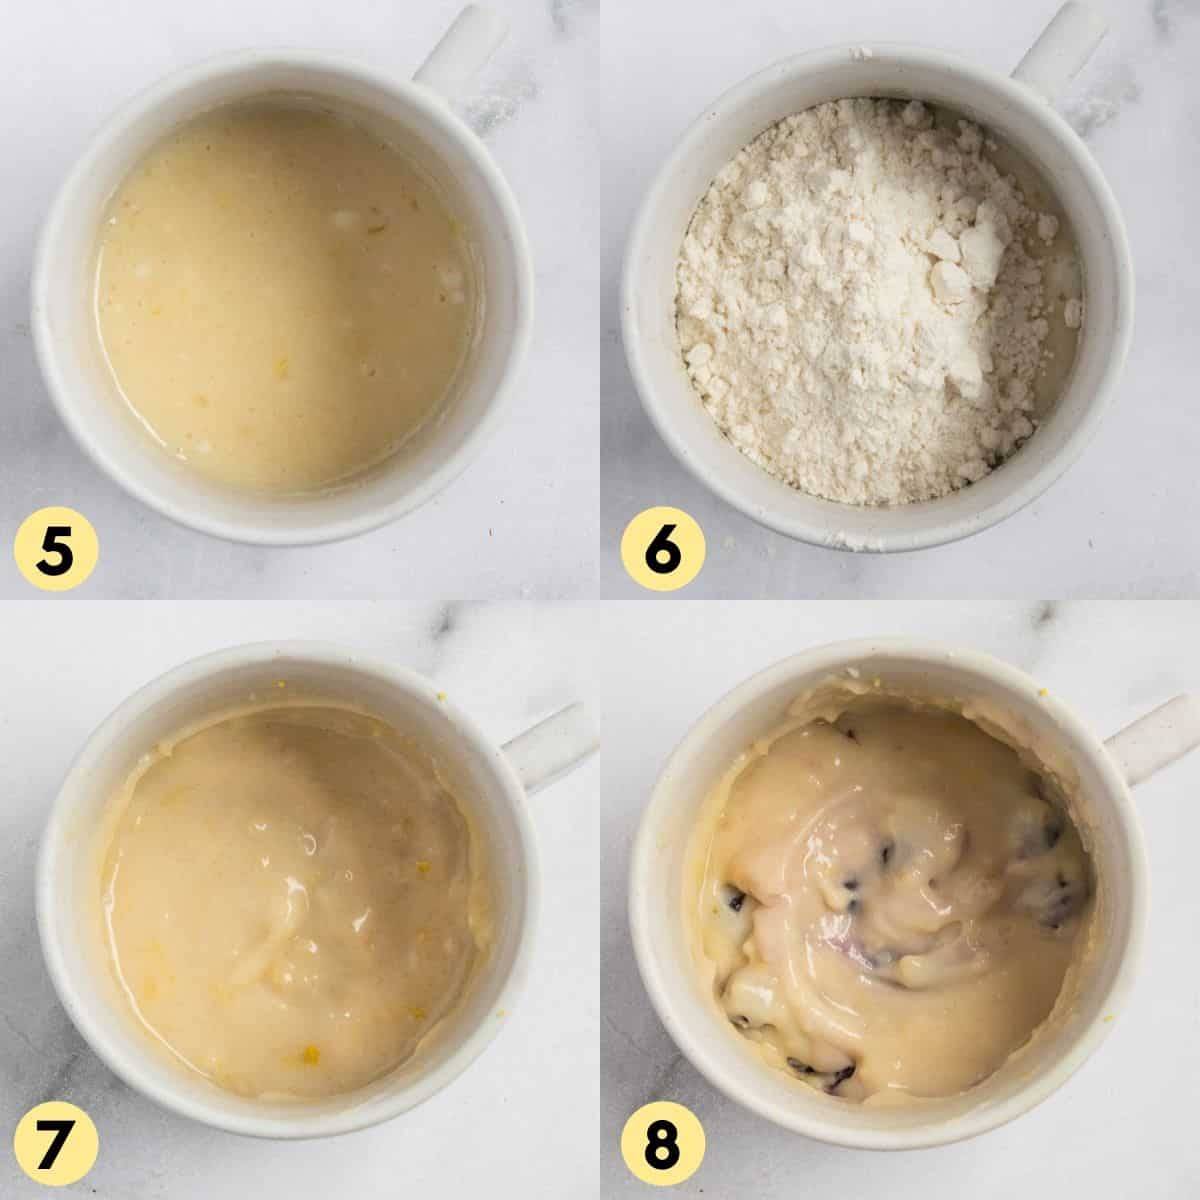 Process photos for mug cake with flour and blueberries added.